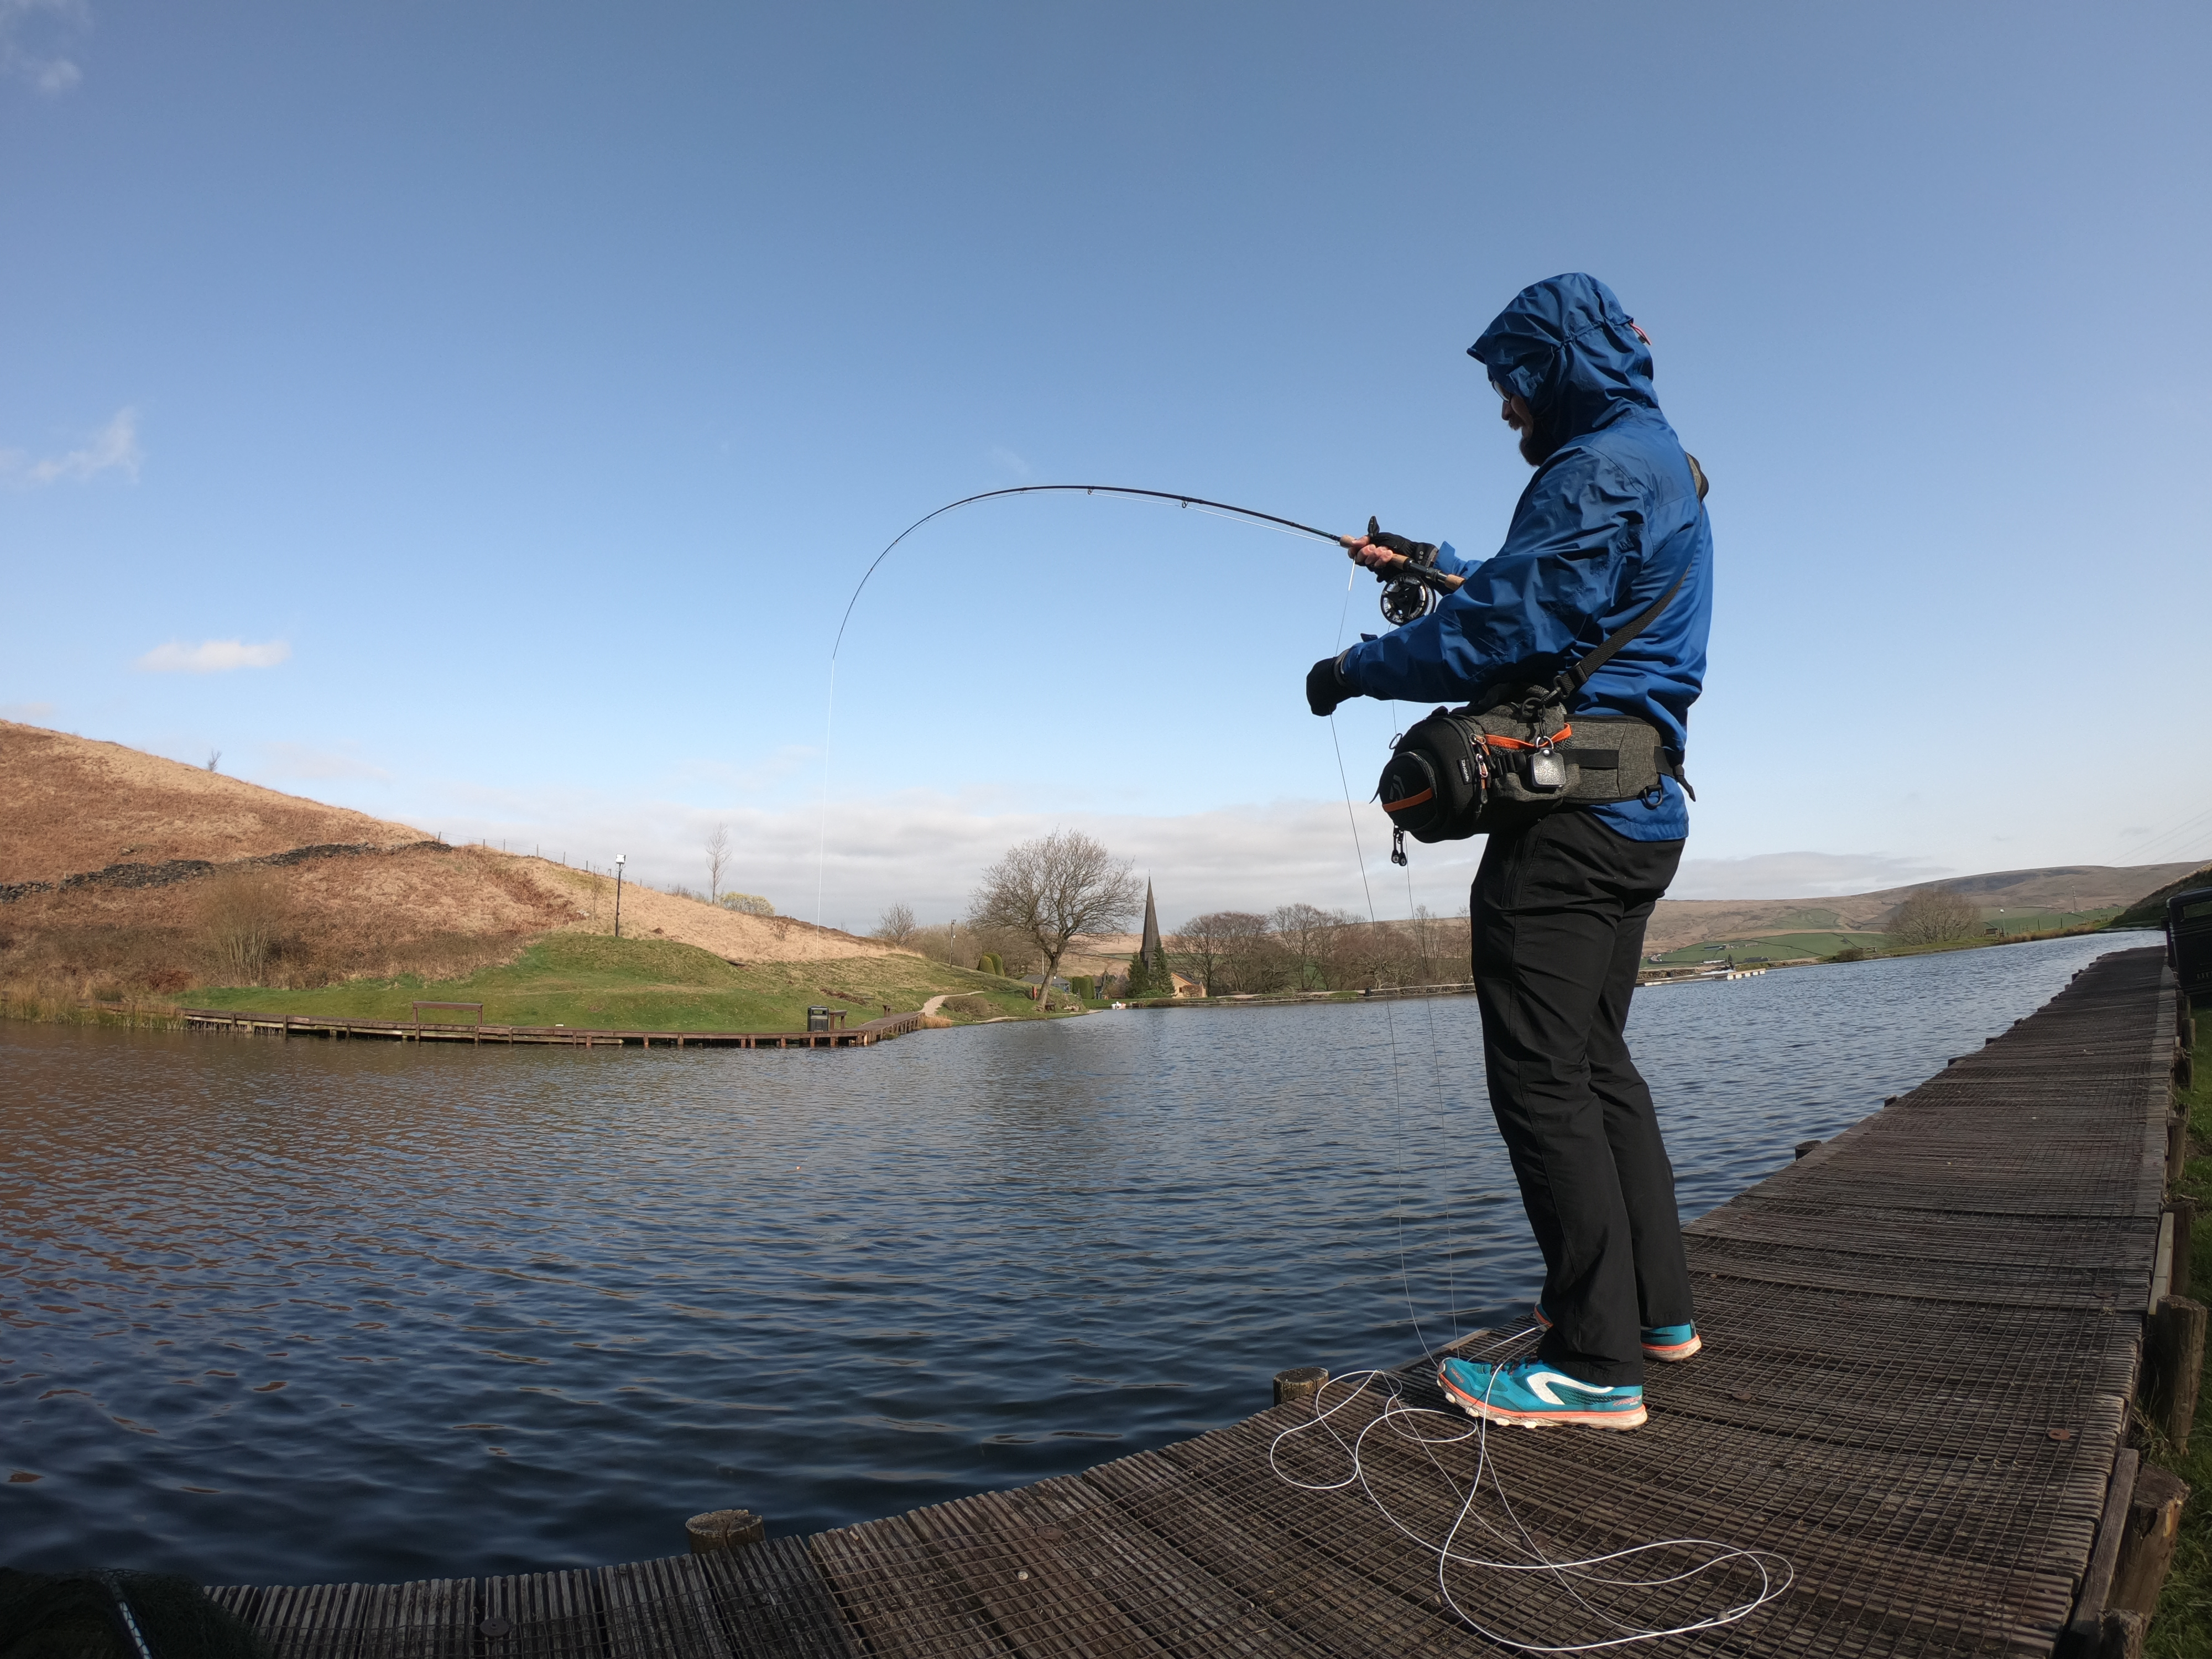 Sales and Support Team Leader, Simon Ross while out fishing at the Pennine Trout Fishery